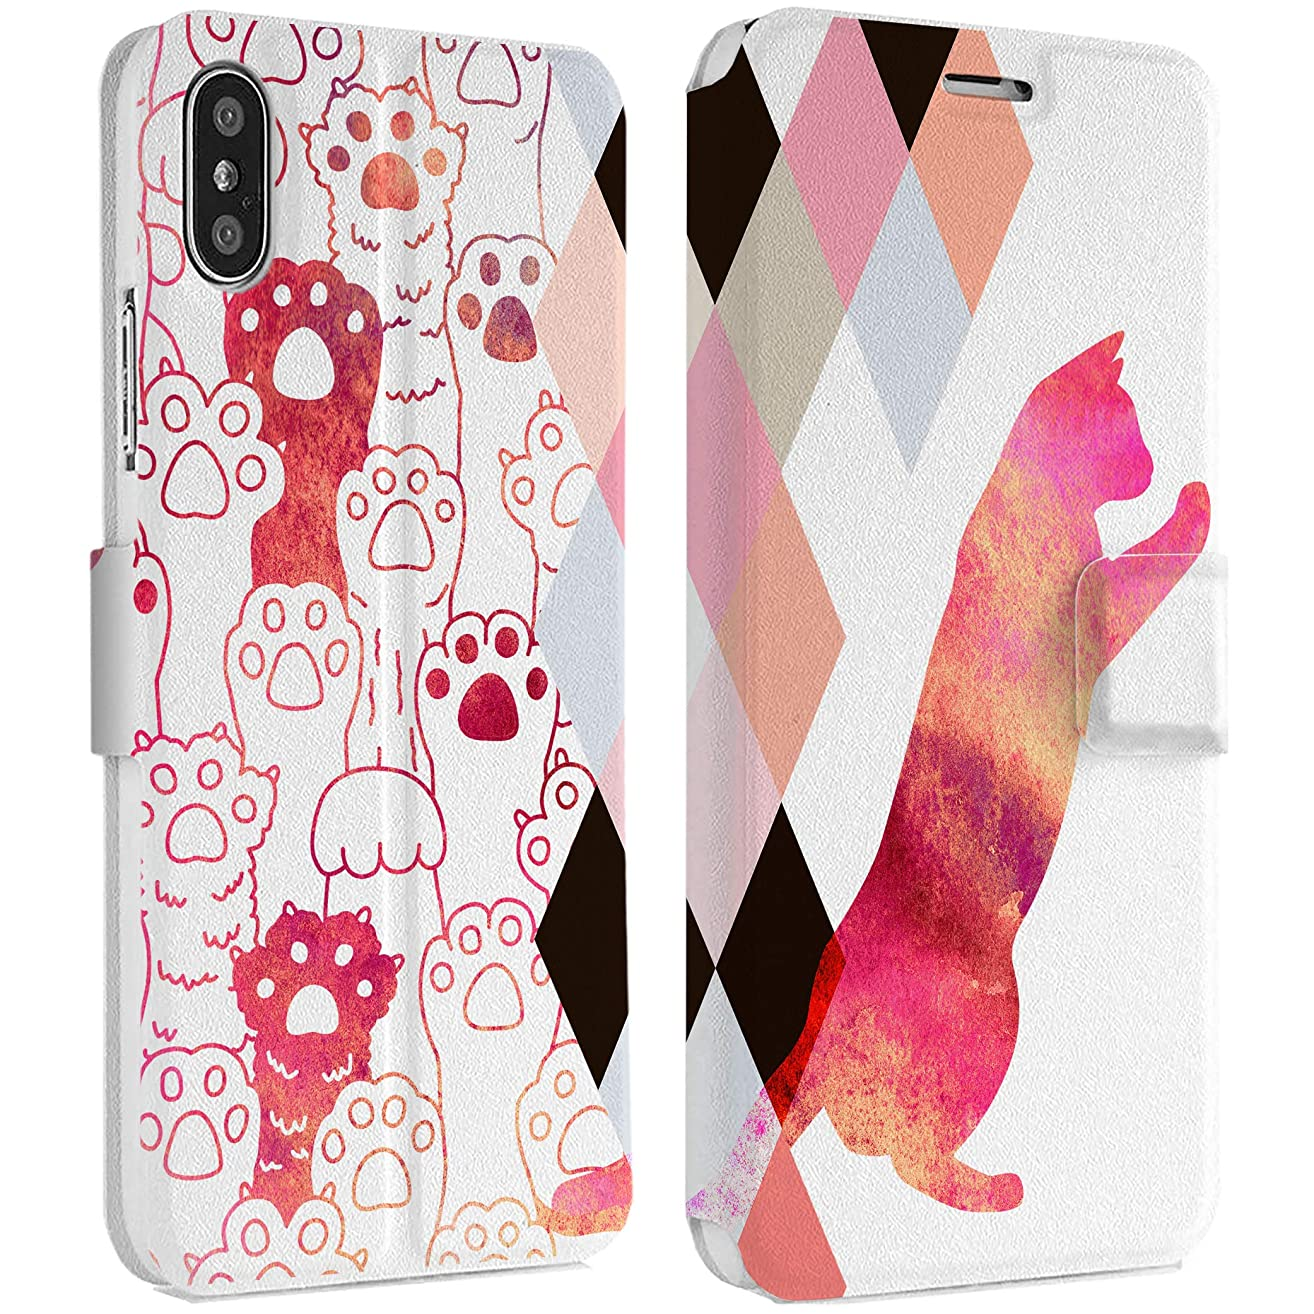 Wonder Wild Cat Paws IPhone Wallet Case X/Xs Xs Max Xr Case 7/8 Plus 6/6s Plus Card Holder Accessories Smart Flip Clear Design Protection Cover Animal Kitten Pet Rhombus Geometrical Pattern Fiery